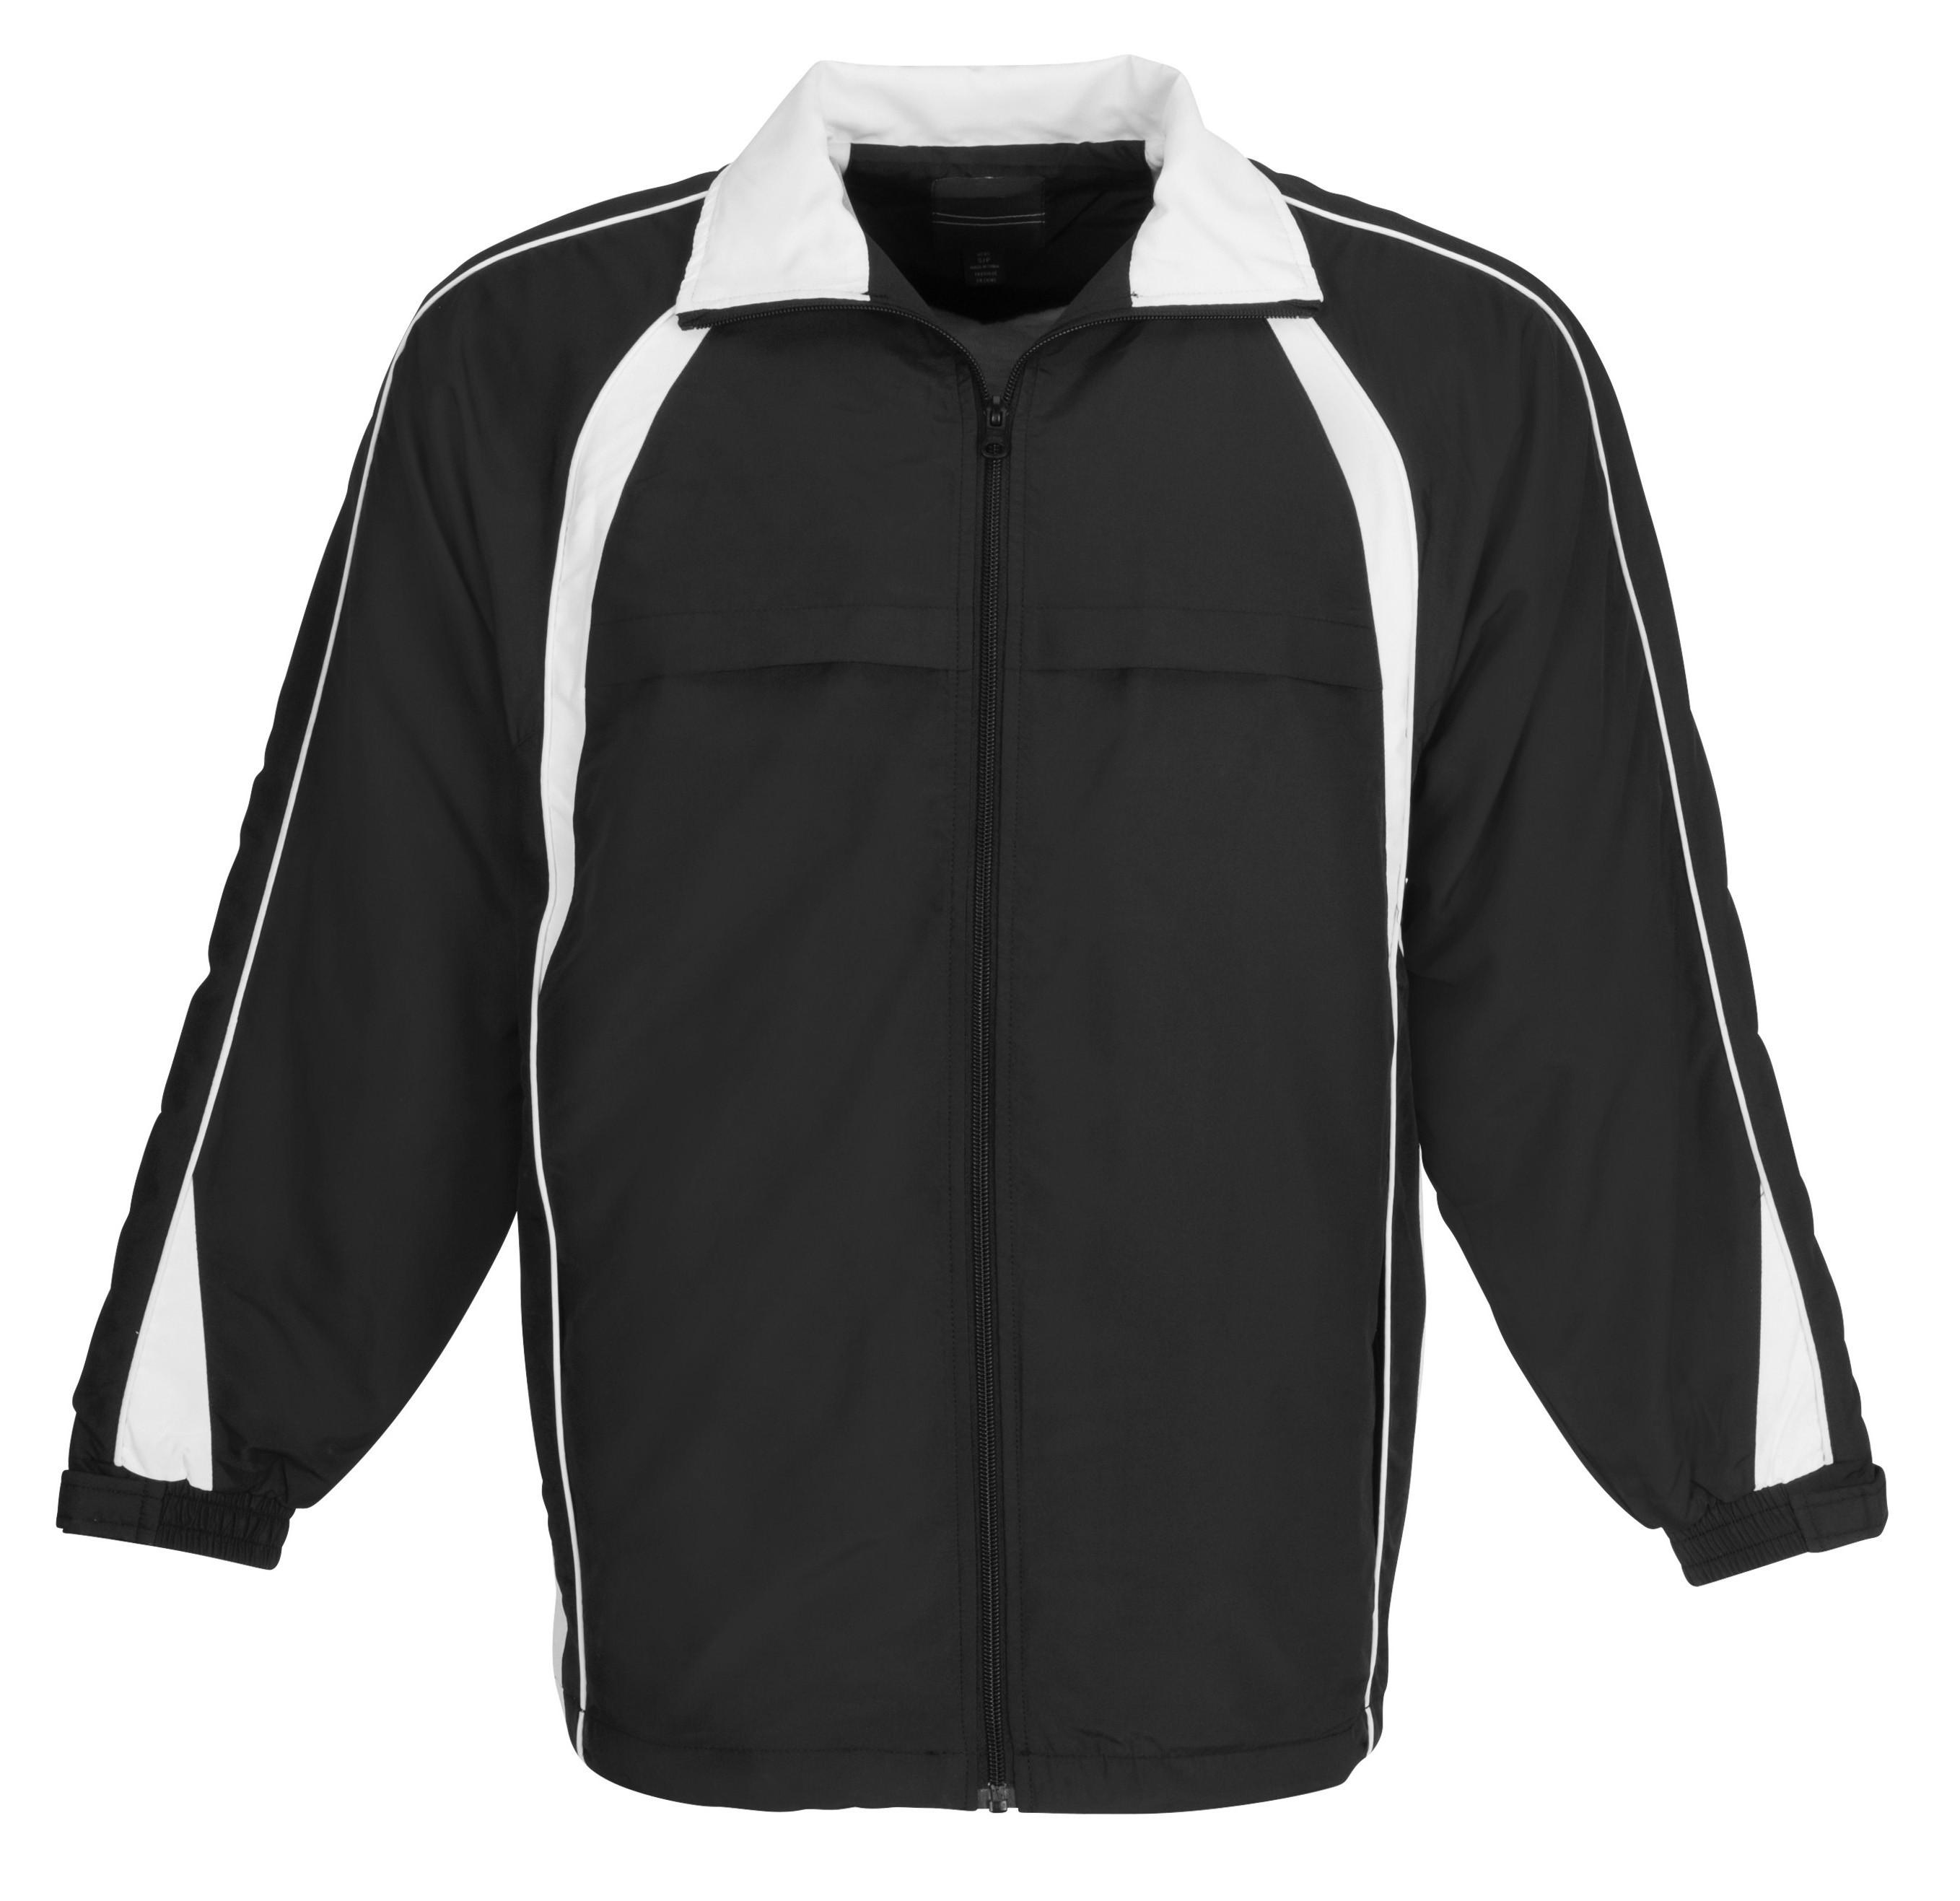 Splice Unisex Track Top - Blw Only